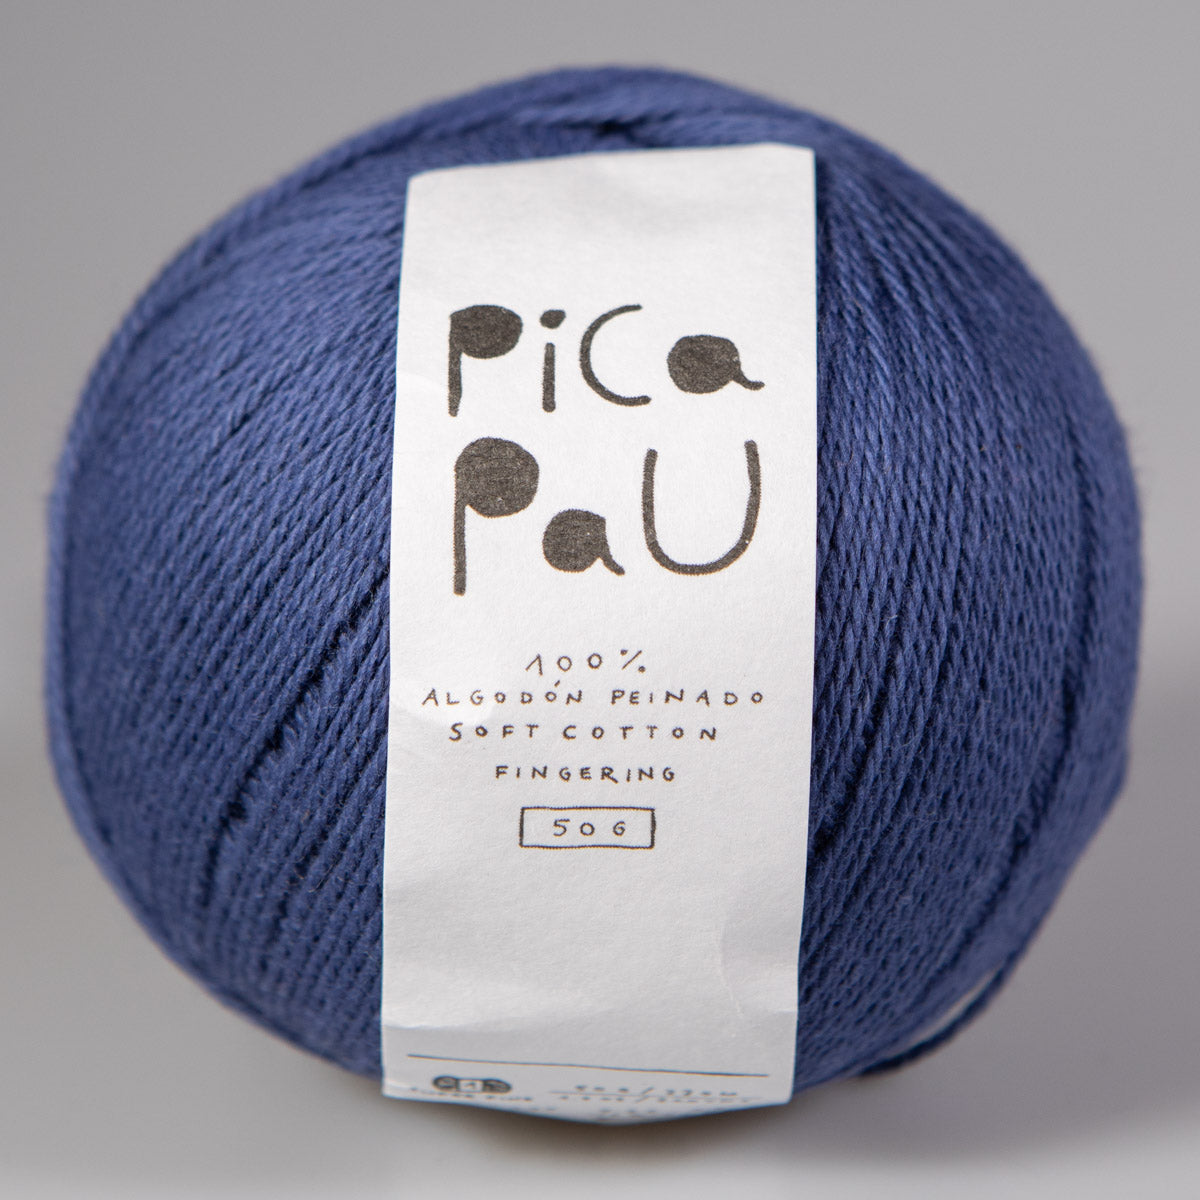 Pica Pau Cotton Yarn / 50g Fingering